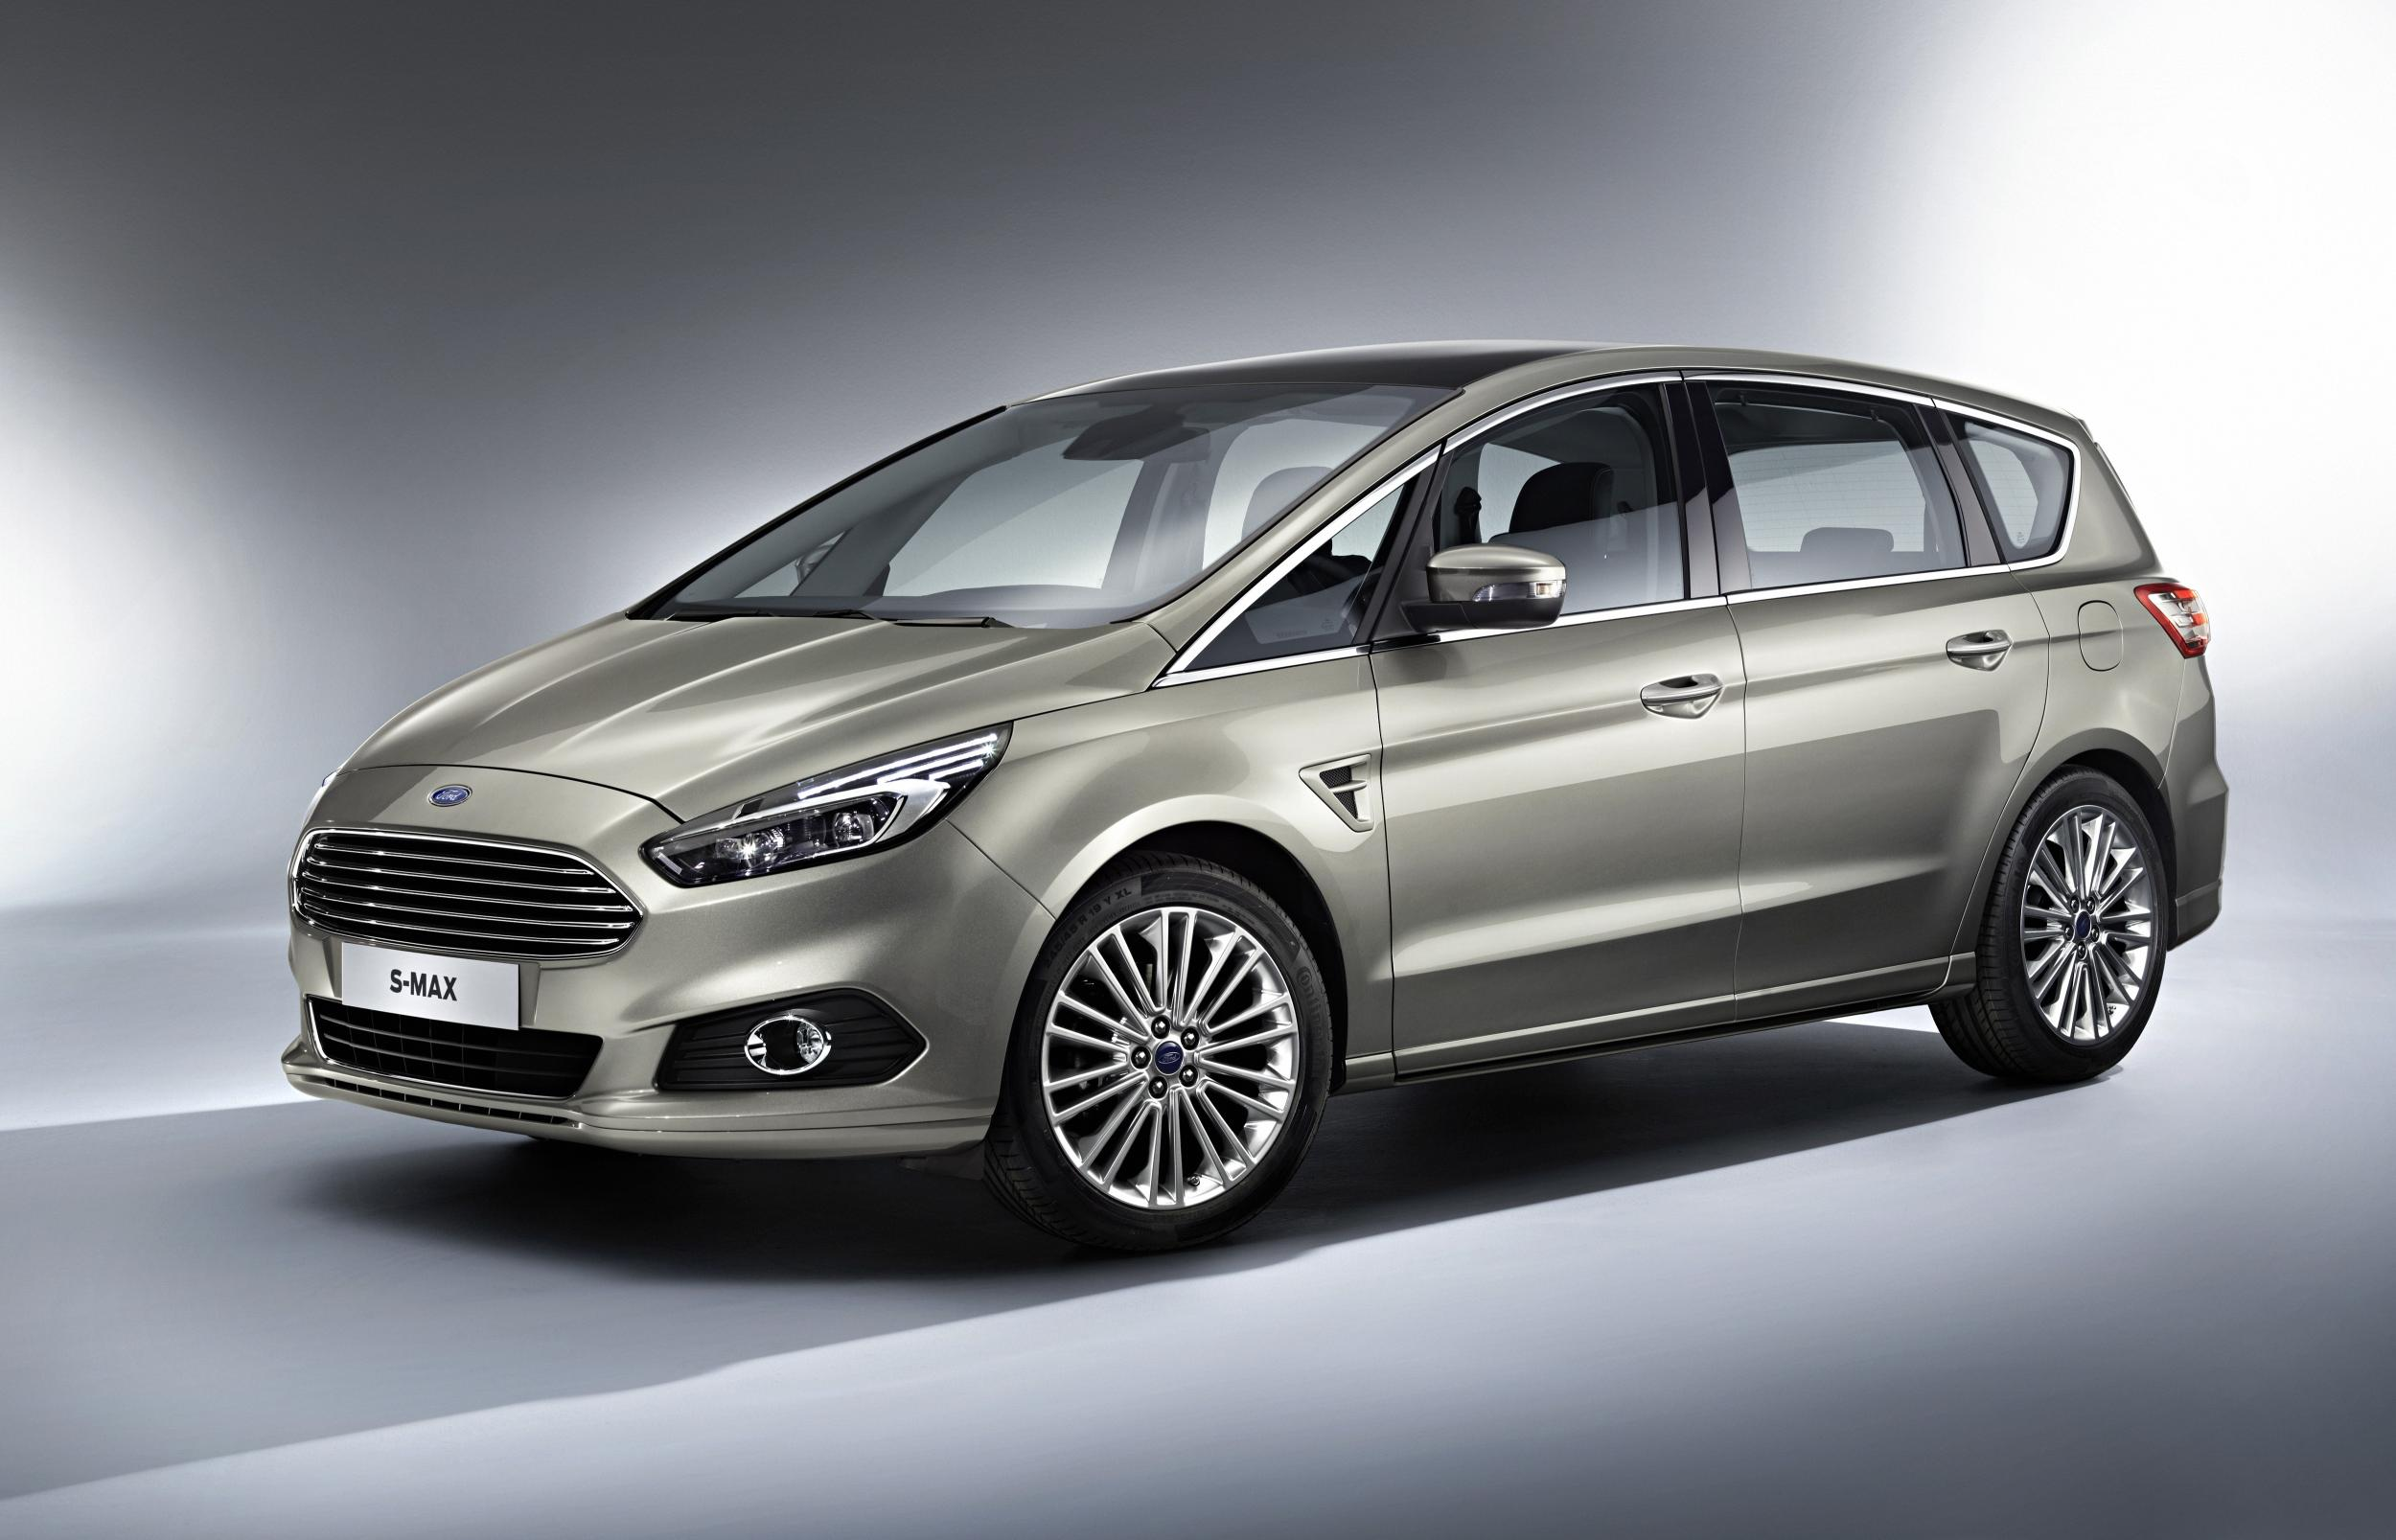 Ford s-max photo - 7